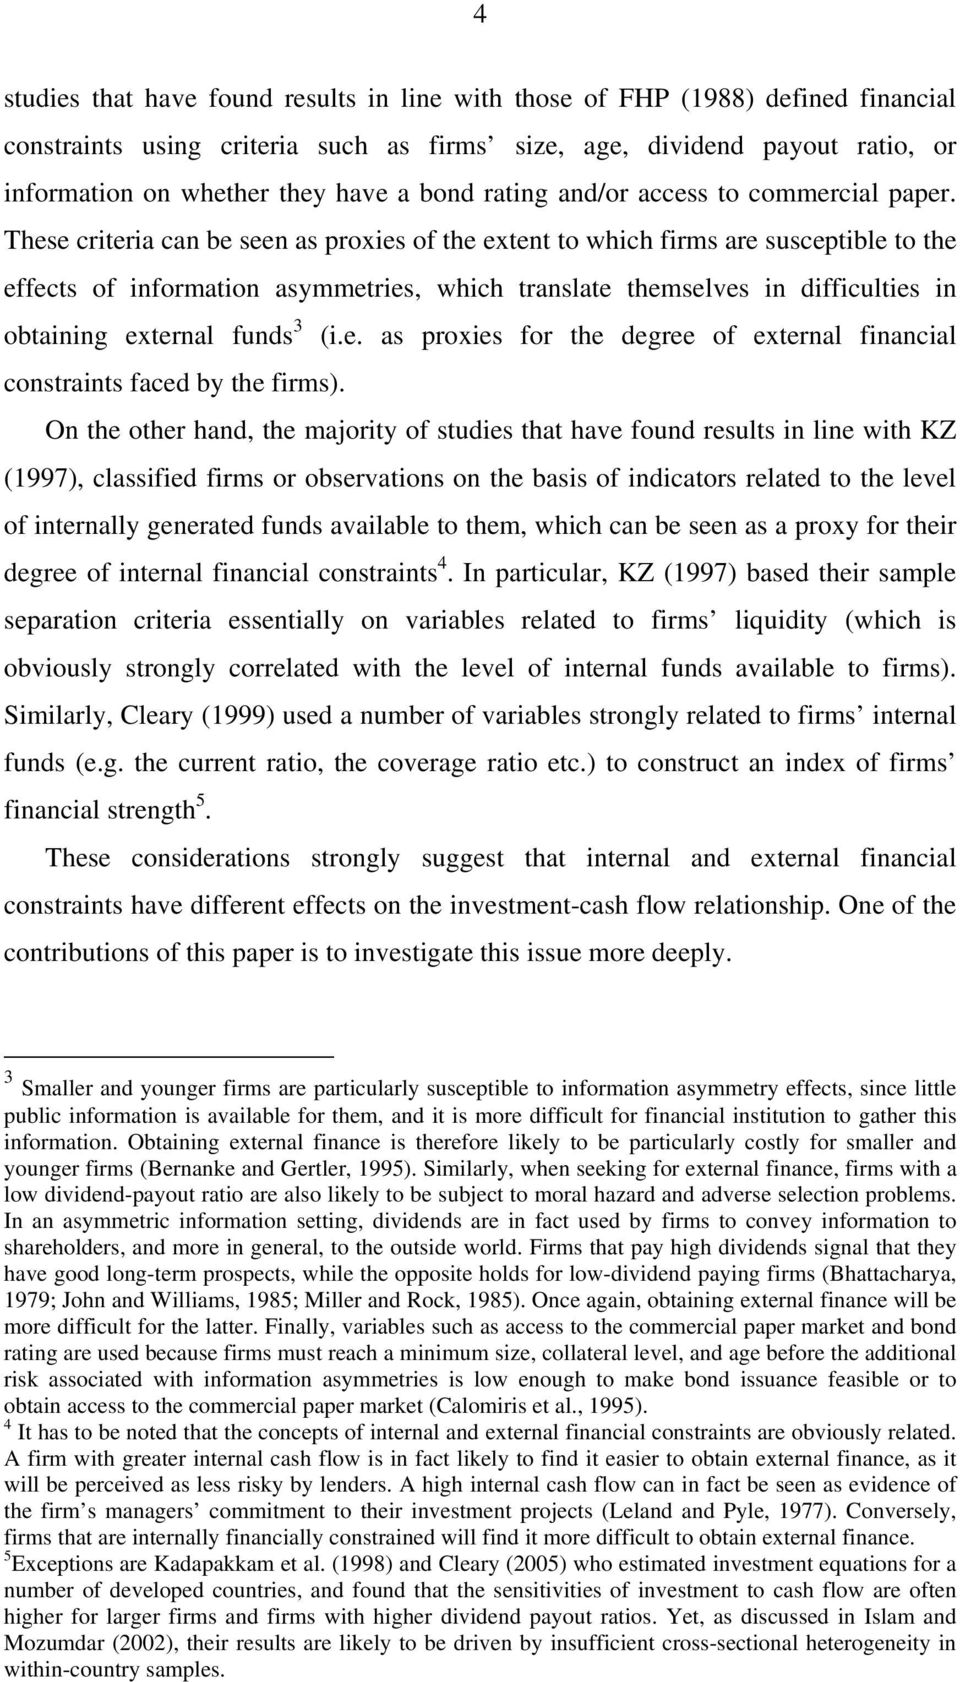 These criteria can be seen as proxies of the extent to which firms are susceptible to the effects of information asymmetries, which translate themselves in difficulties in obtaining external funds 3